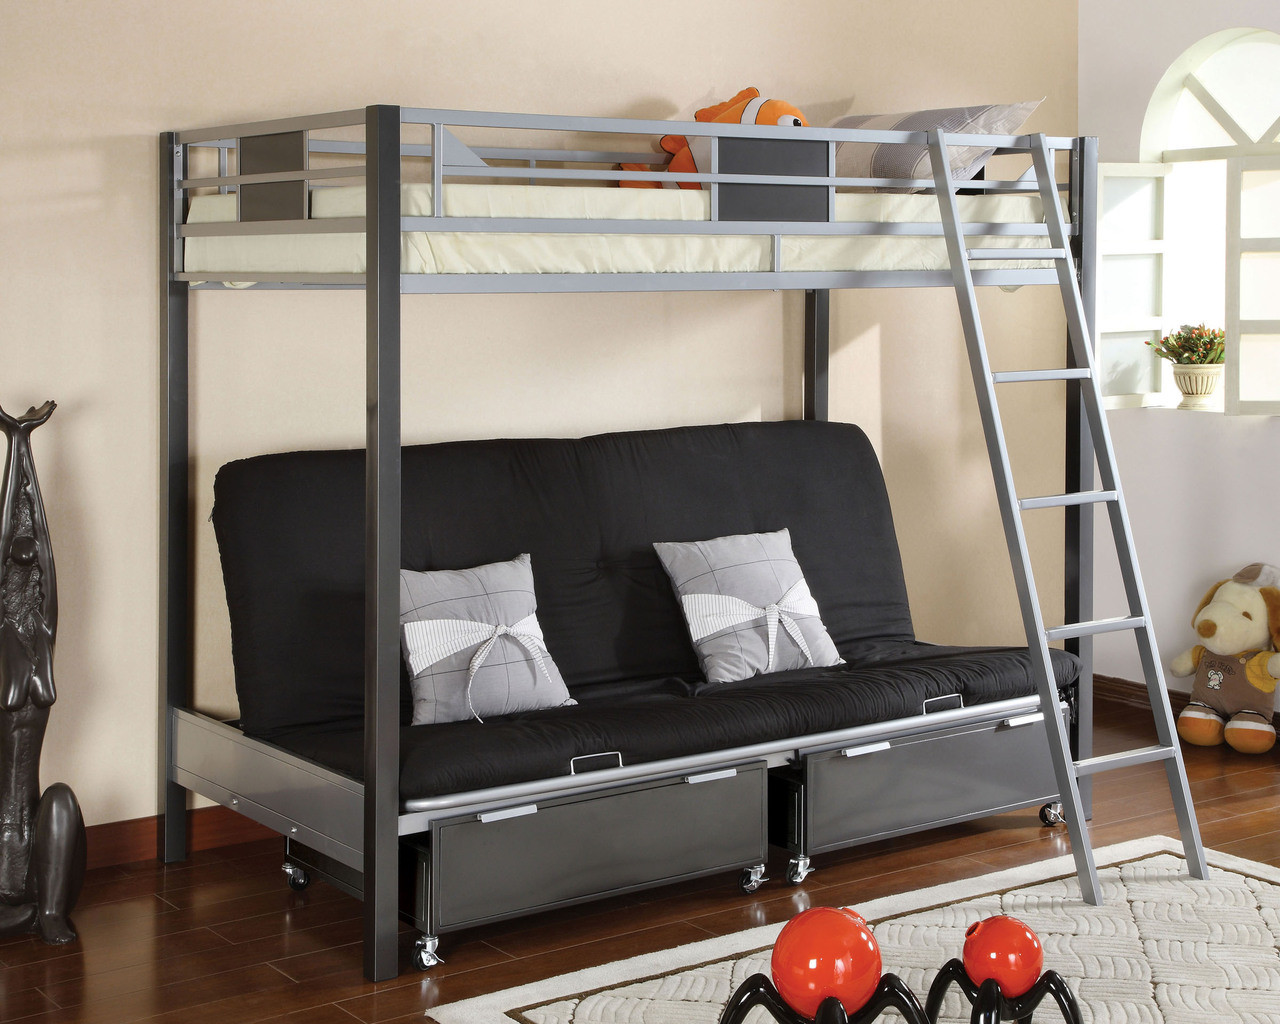 Cletis Silver & Gun Metal Twin Futon Bunk Bed | Twin Futon Bunk Bed - Cletis Silver & Gun Metal Twin Futon Bunk Bed